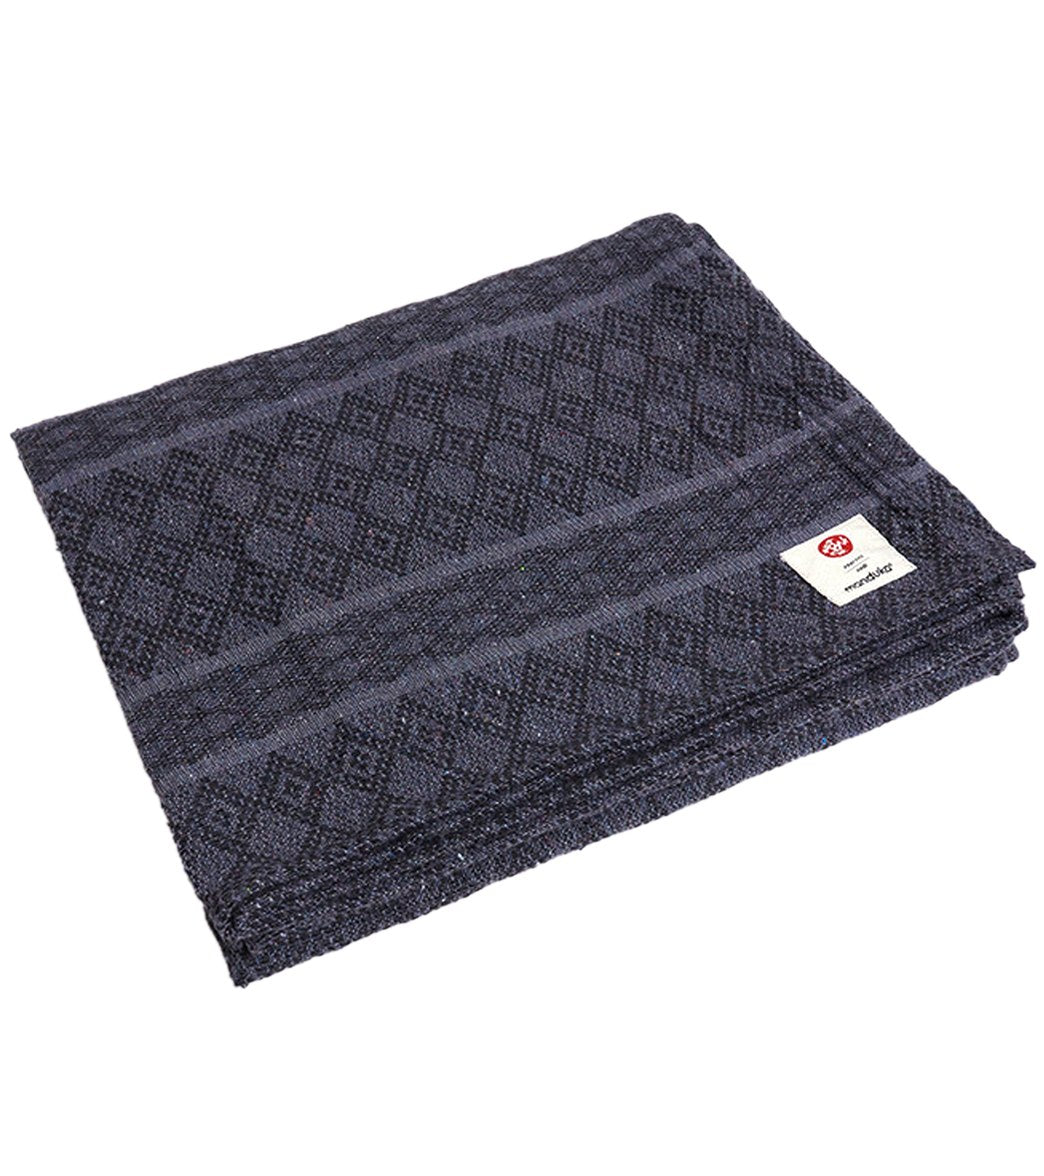 Yoga Blankets Rugs At Yogaoutlet Com